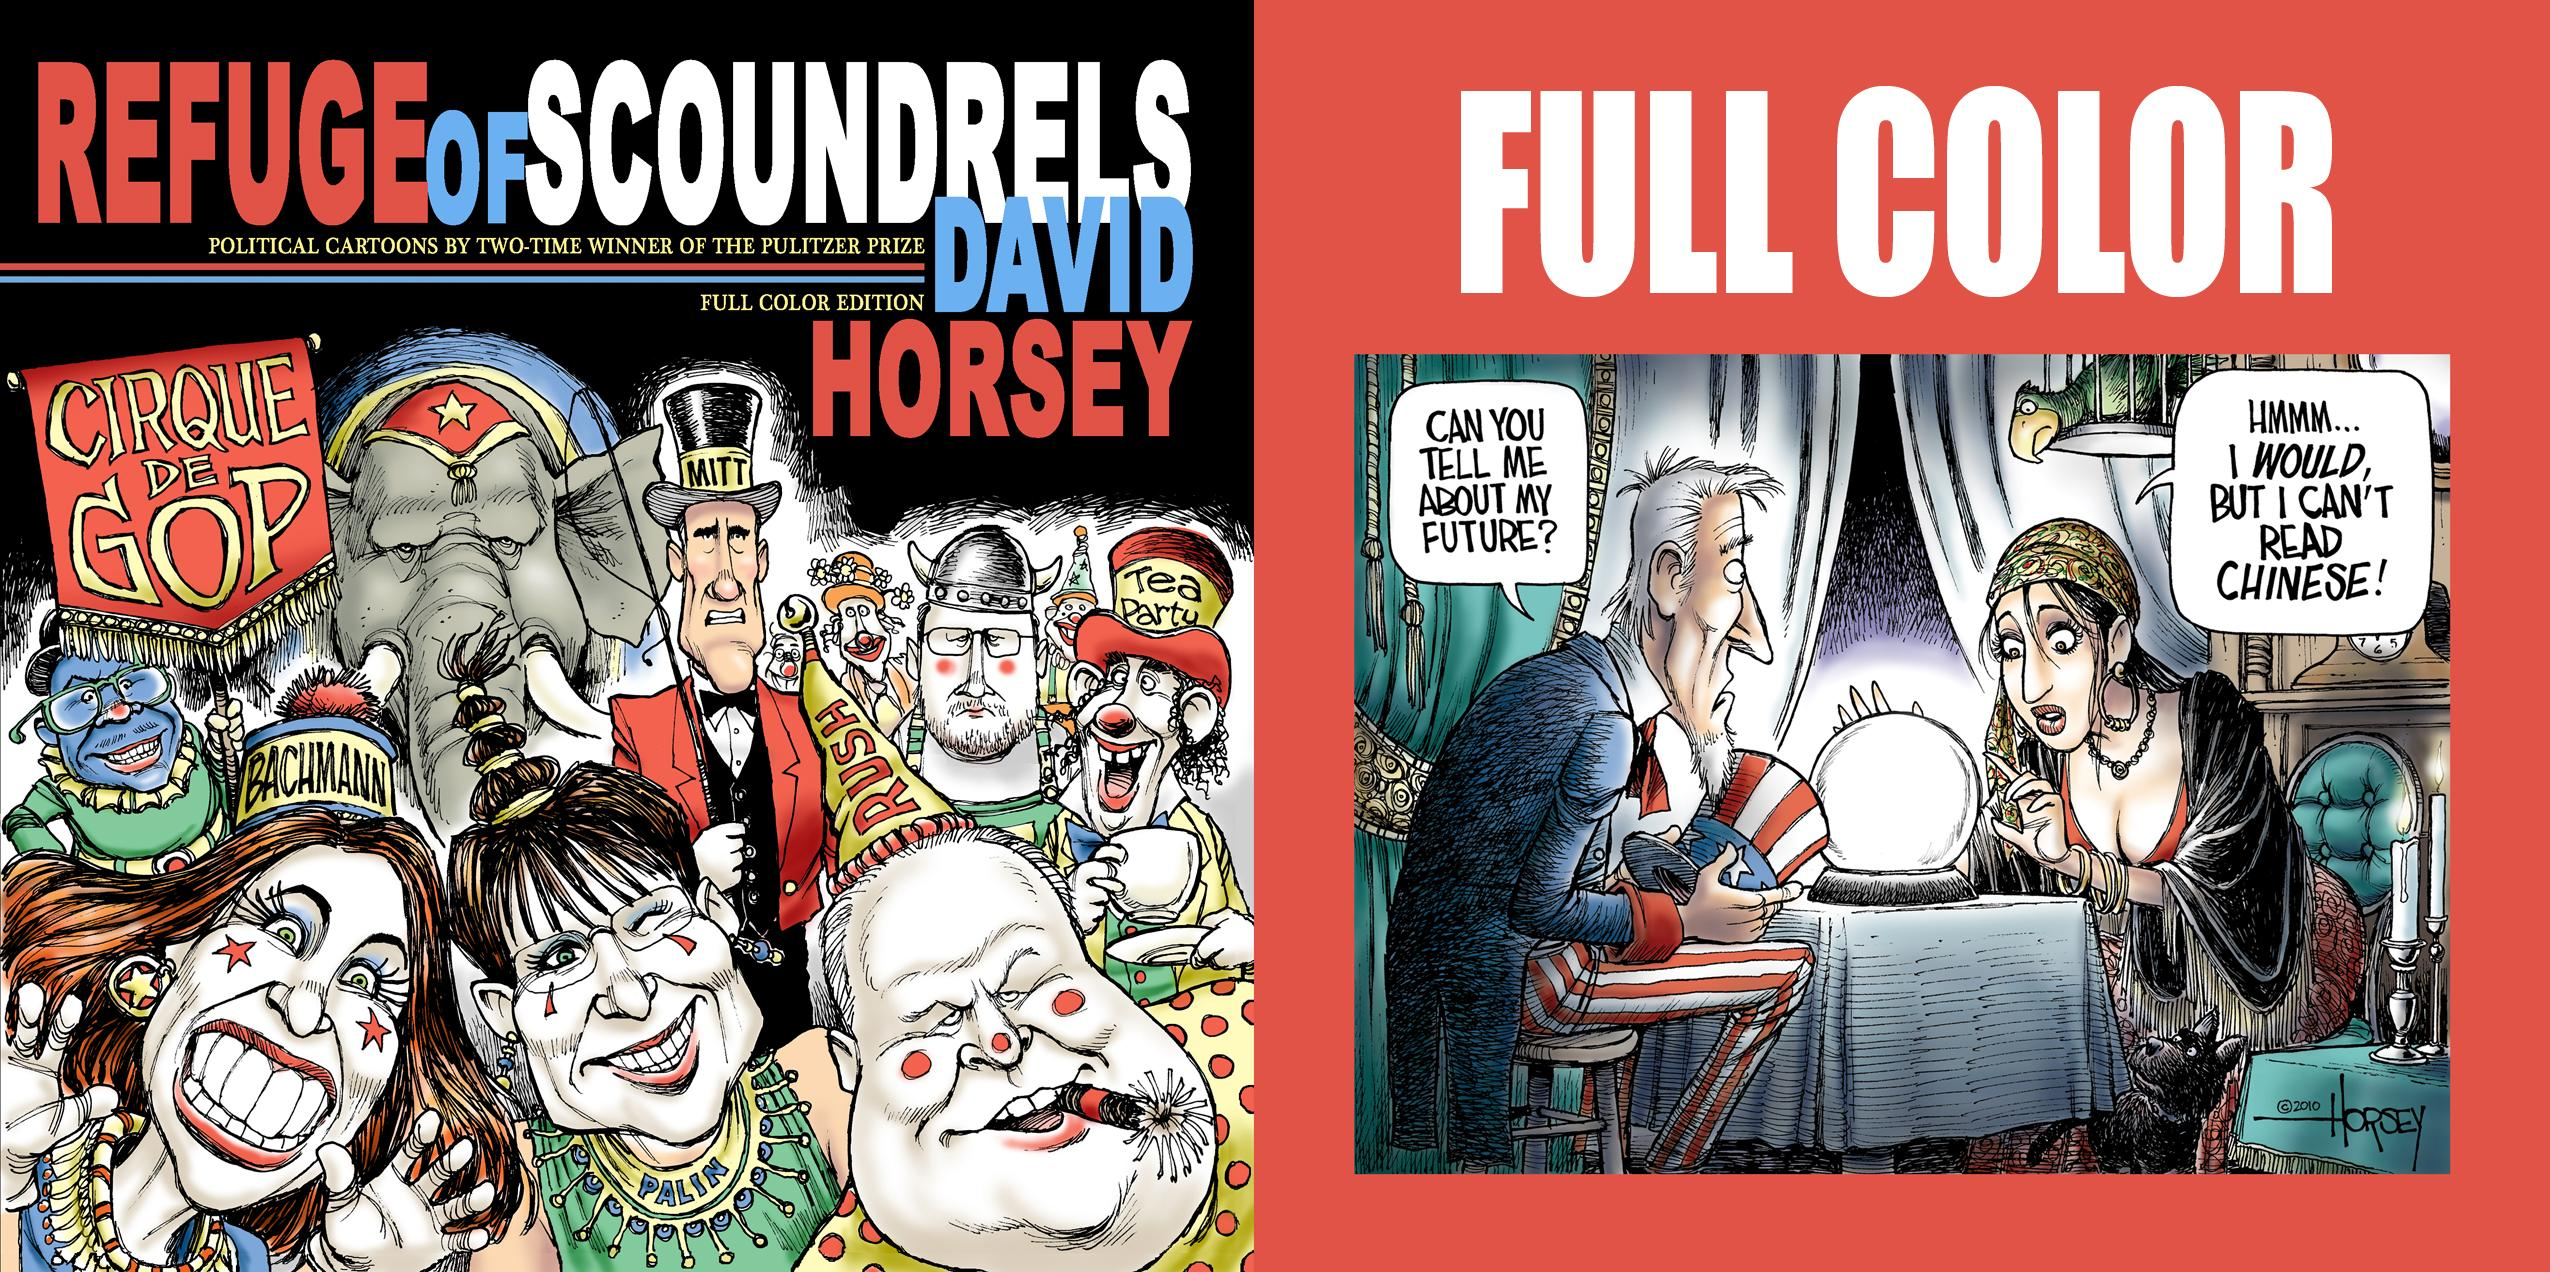 http://www.david-horsey.com/sites/default/files/styles/uc_product_full/public/SALES%20cover%20color.jpg?itok=MI-AFdGJ